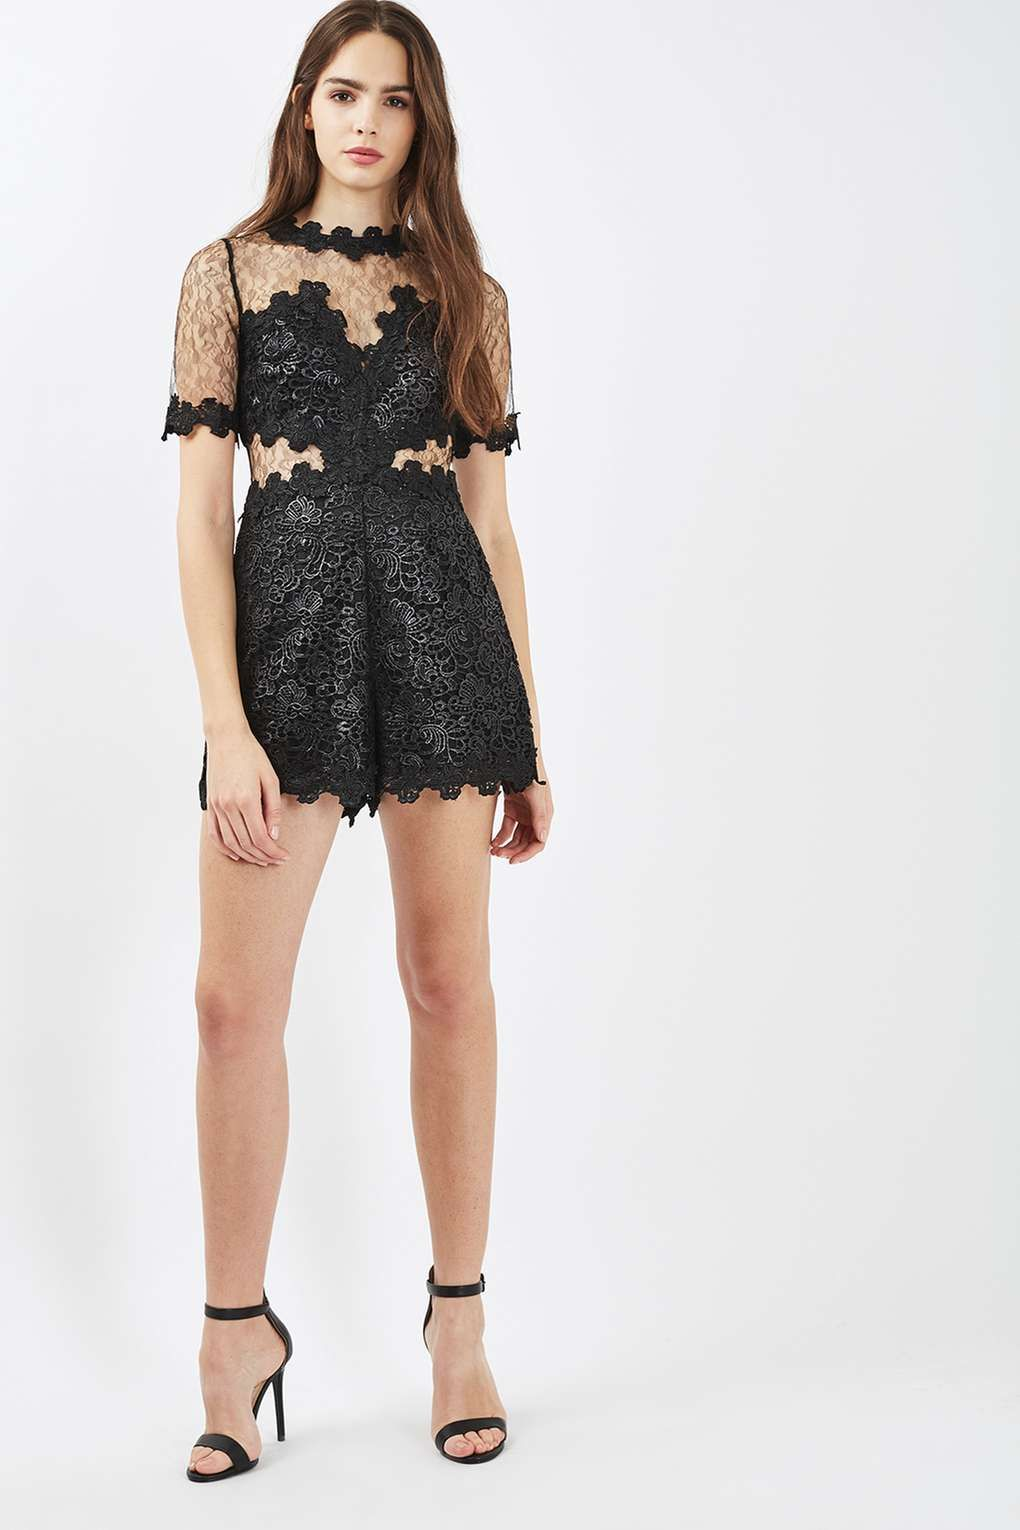 446bf22e0cd Coated Lace Playsuit - Rompers   Jumpsuits - Clothing